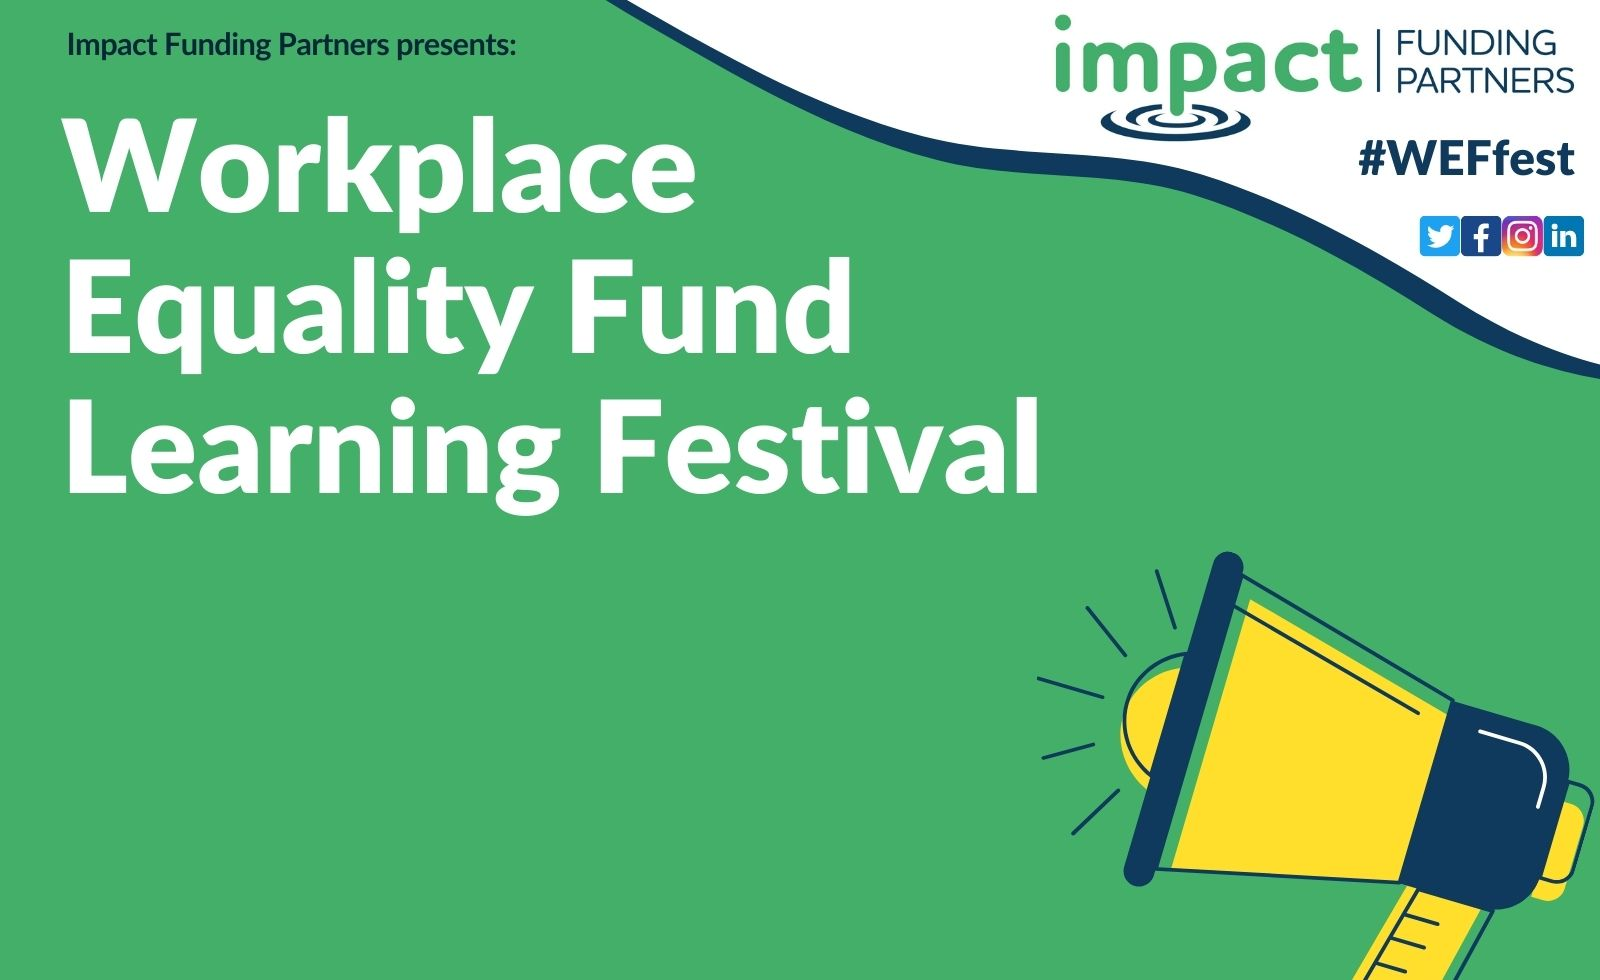 A poster advertising the Impact Funding Partners Workplace Equality Fund Learning Festival